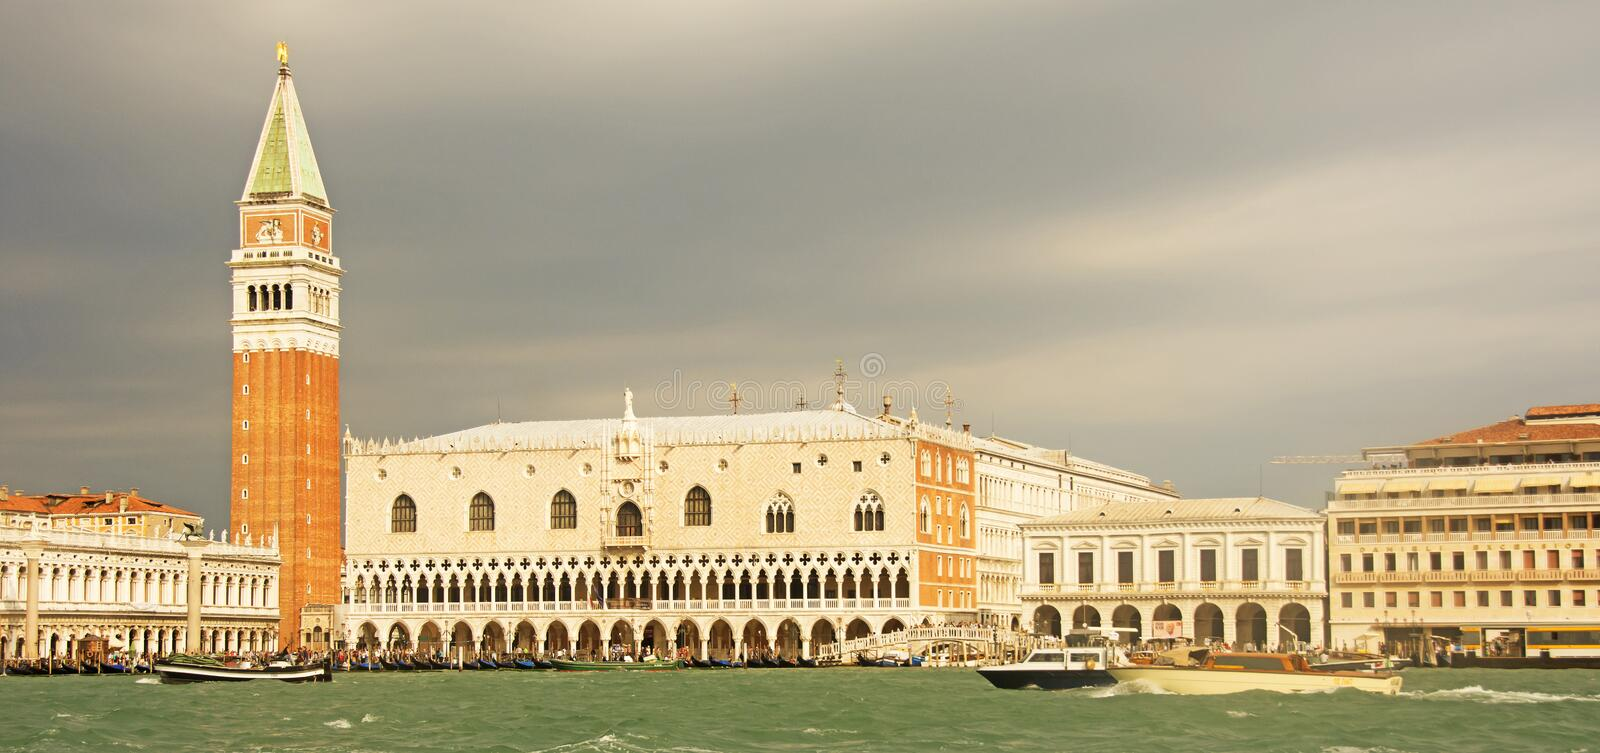 San Marco Square in Venice against a stormy sky royalty free stock images